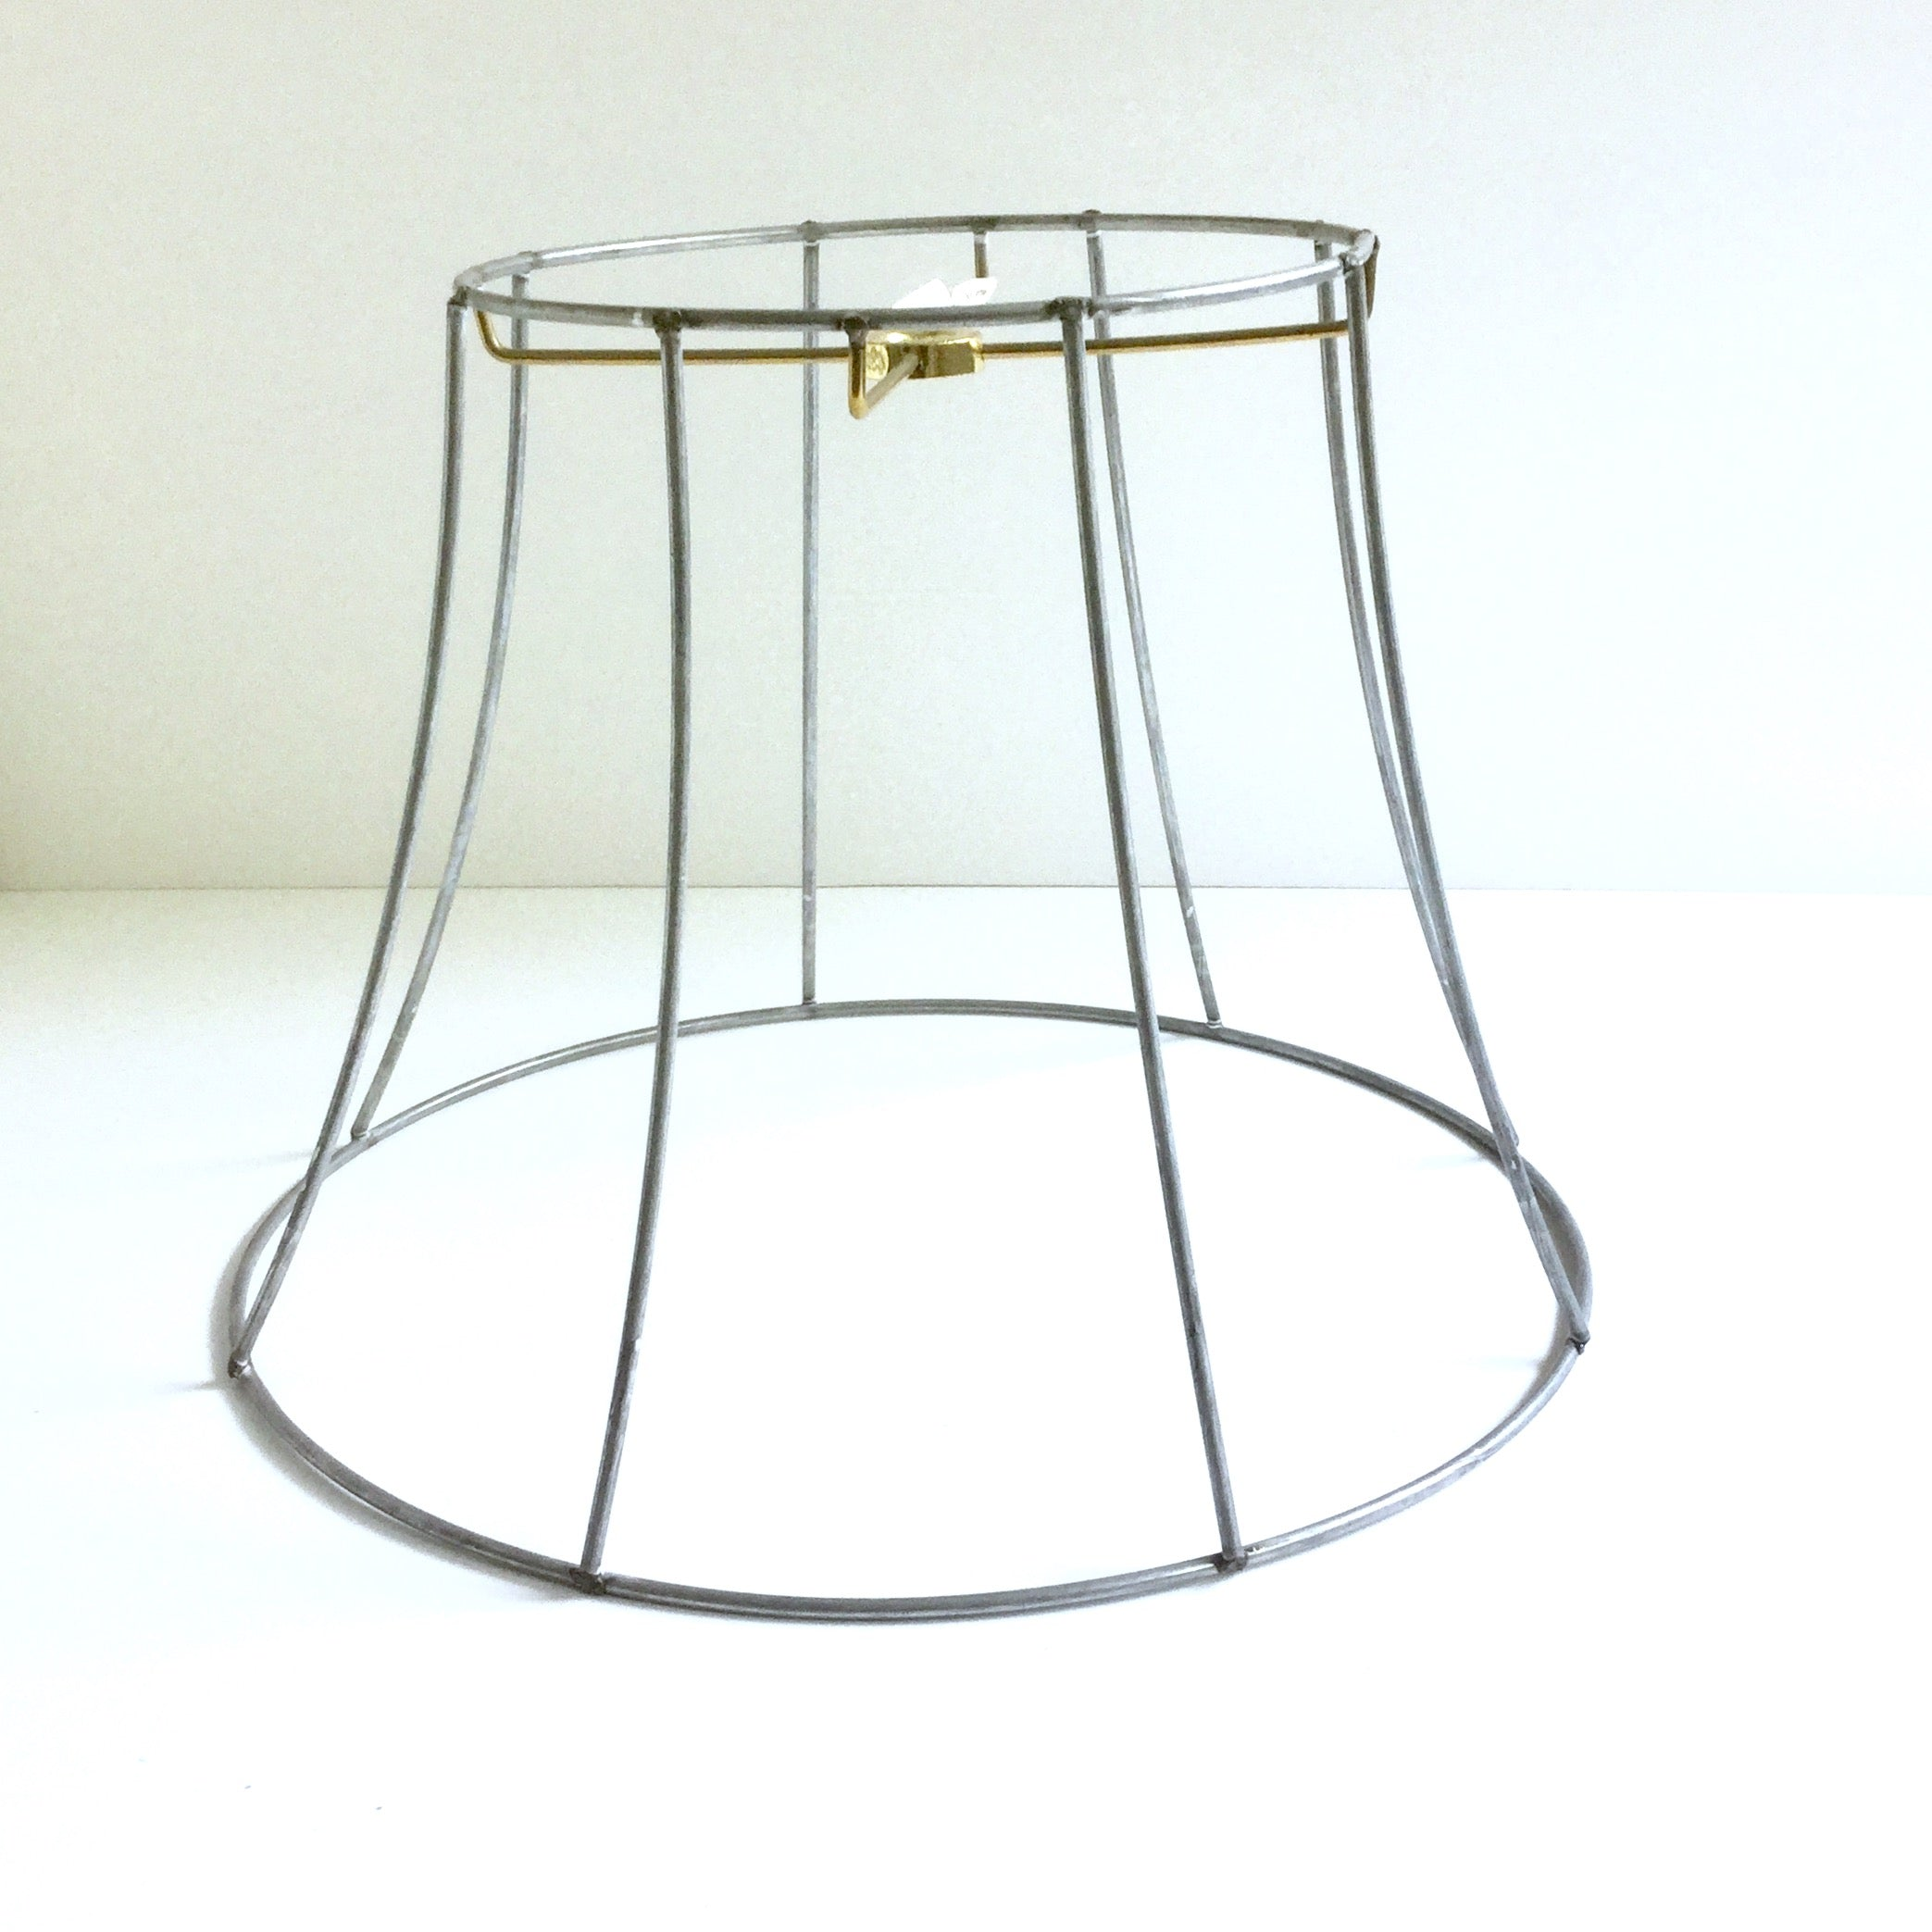 Wire lampshade frames wire center lamp shade frames wire rose mille rh rosemille com wire lampshade frames for sale wire lampshade keyboard keysfo Images